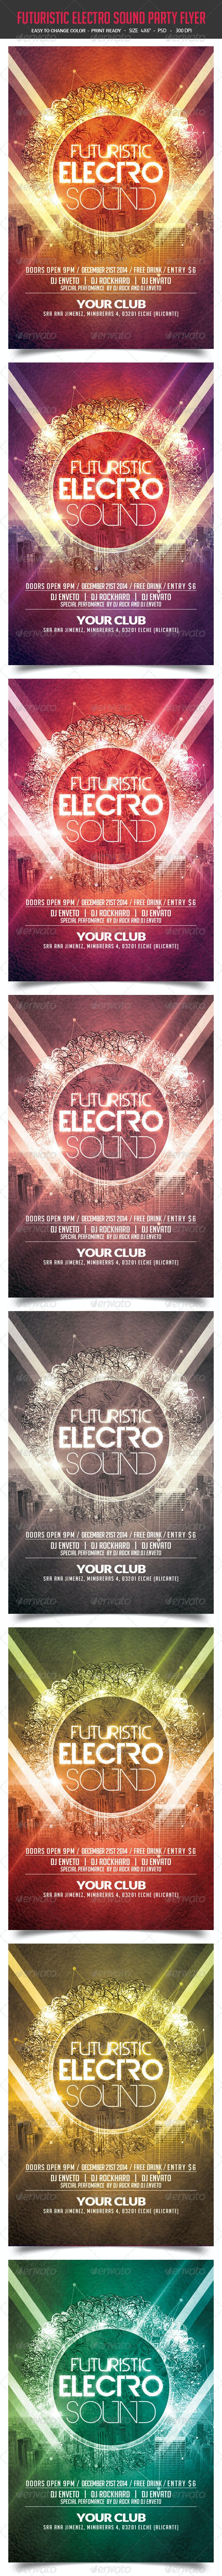 Futuristic Electro Sound Party Flyer - Clubs & Parties Events